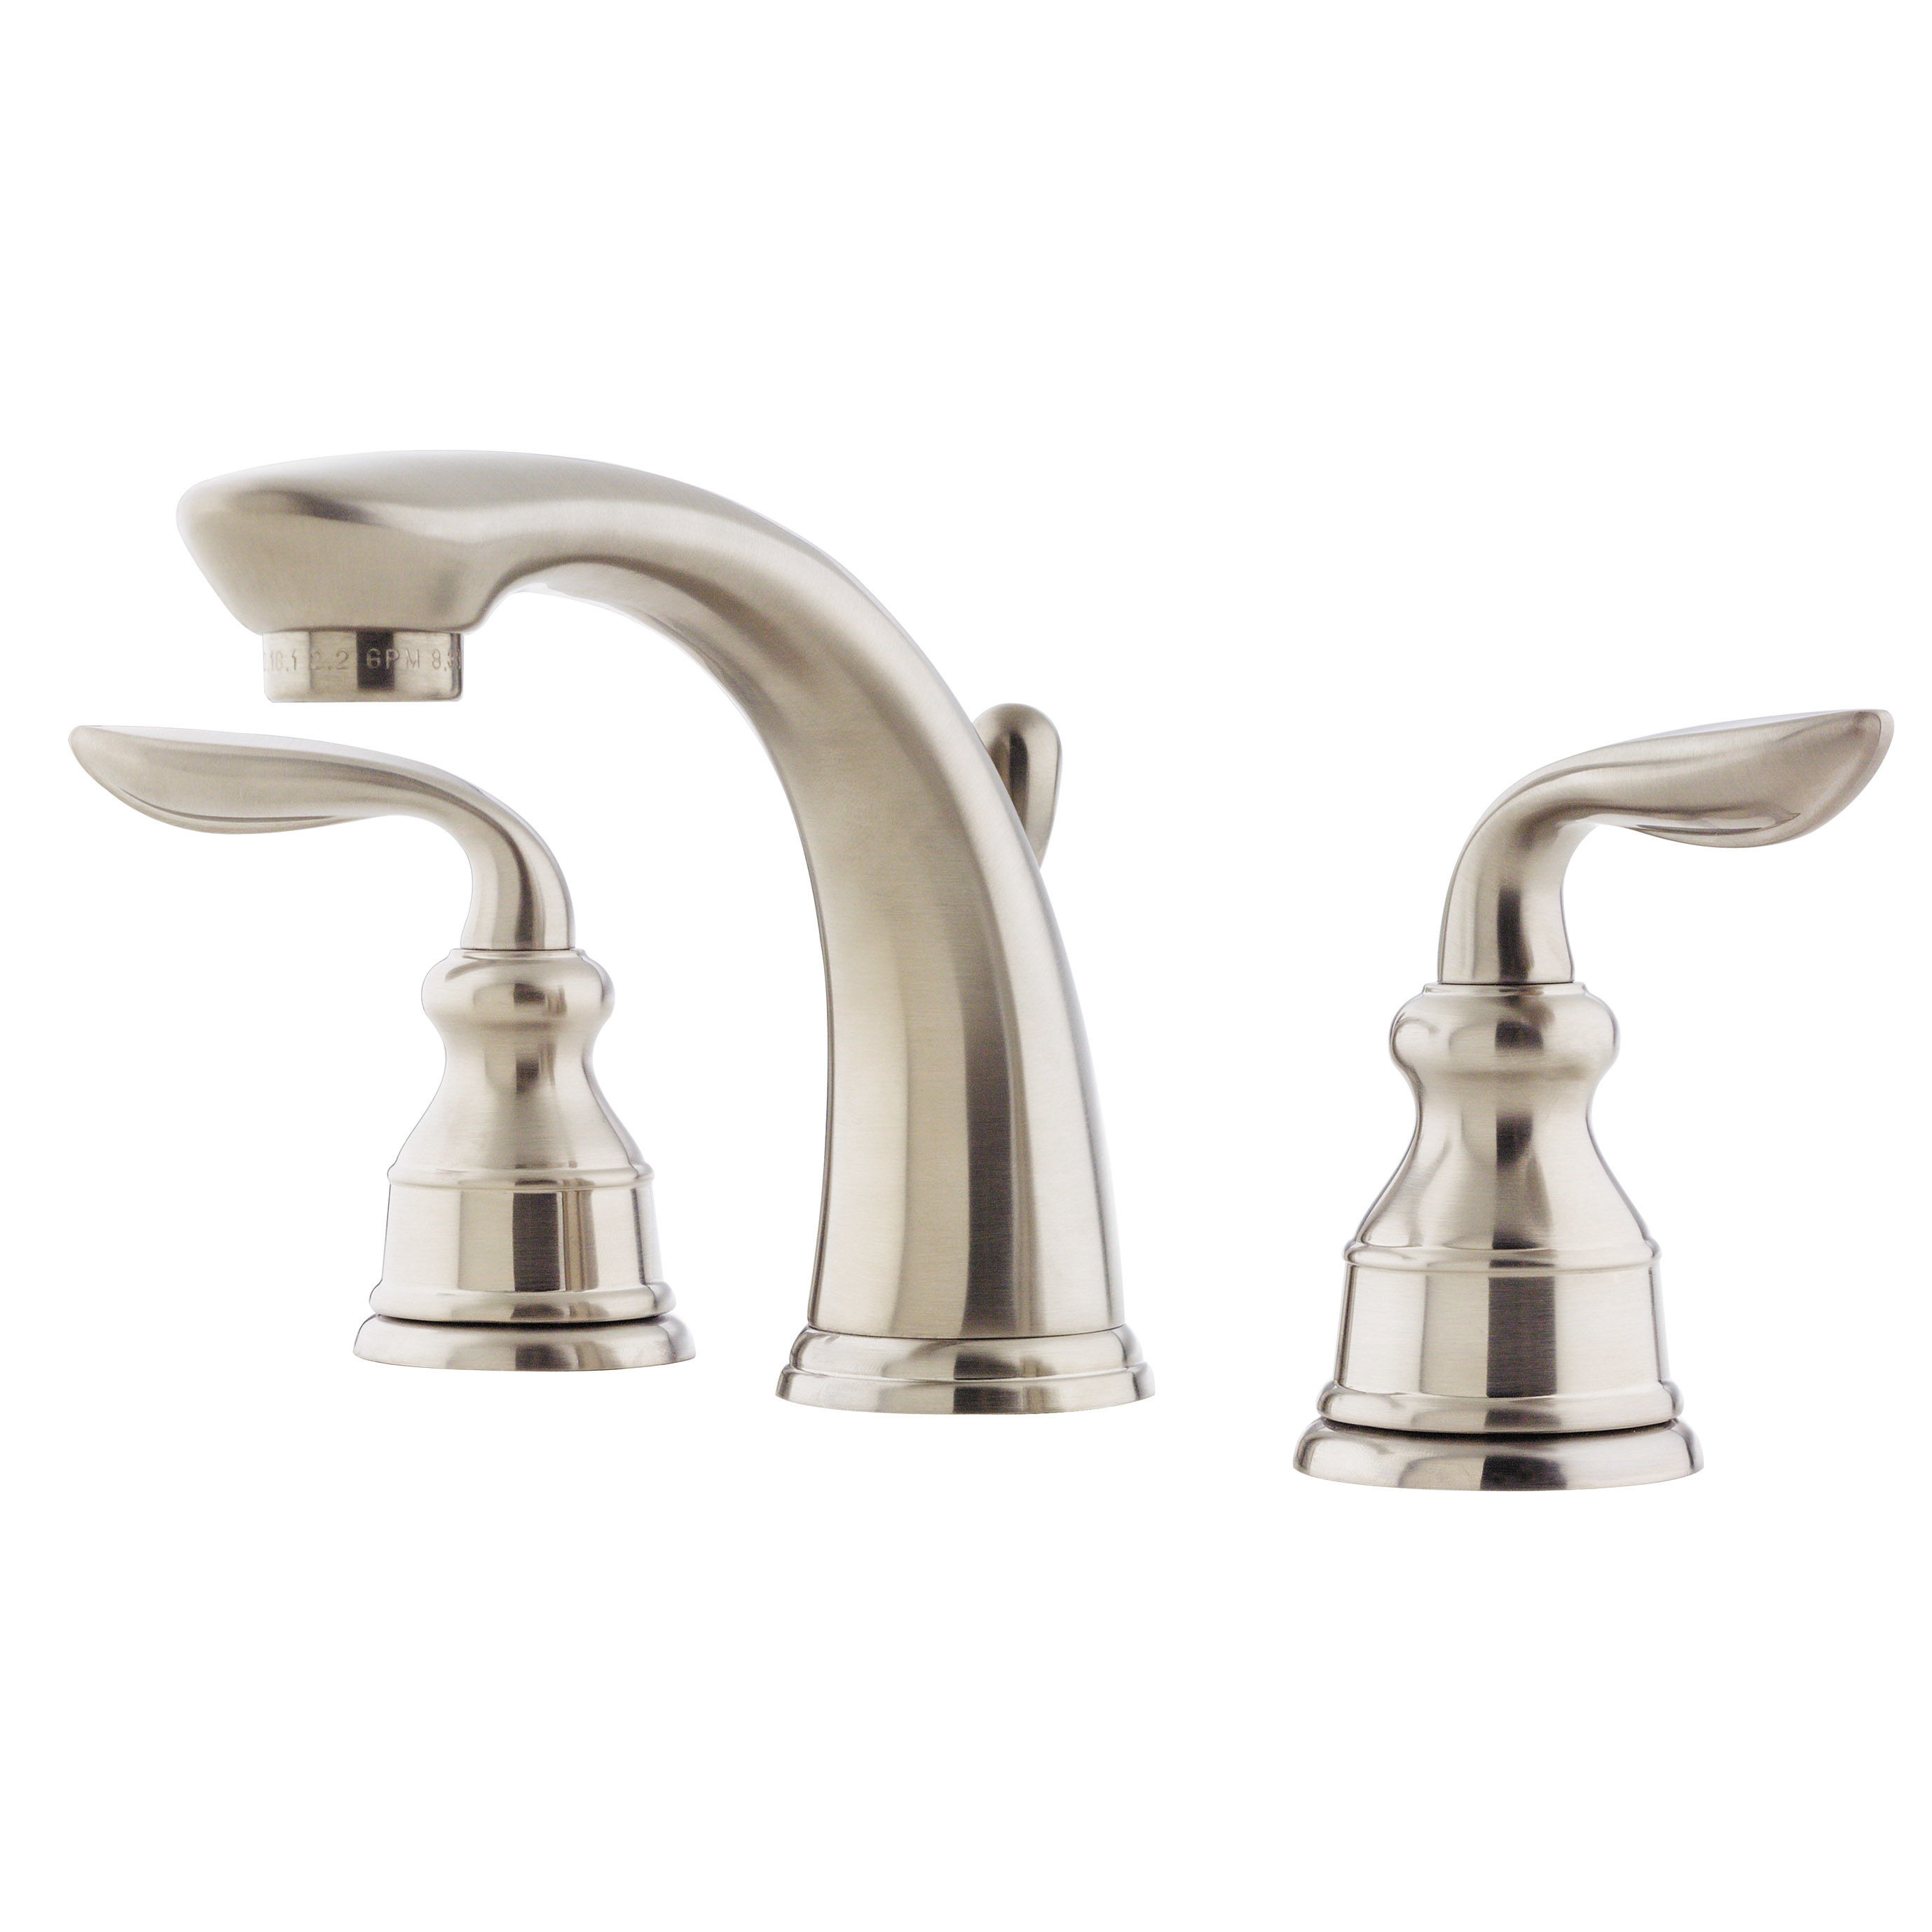 Pfister LF-049-CB0K Brushed Nickel Avalon 1.2 GPM Widespread ...